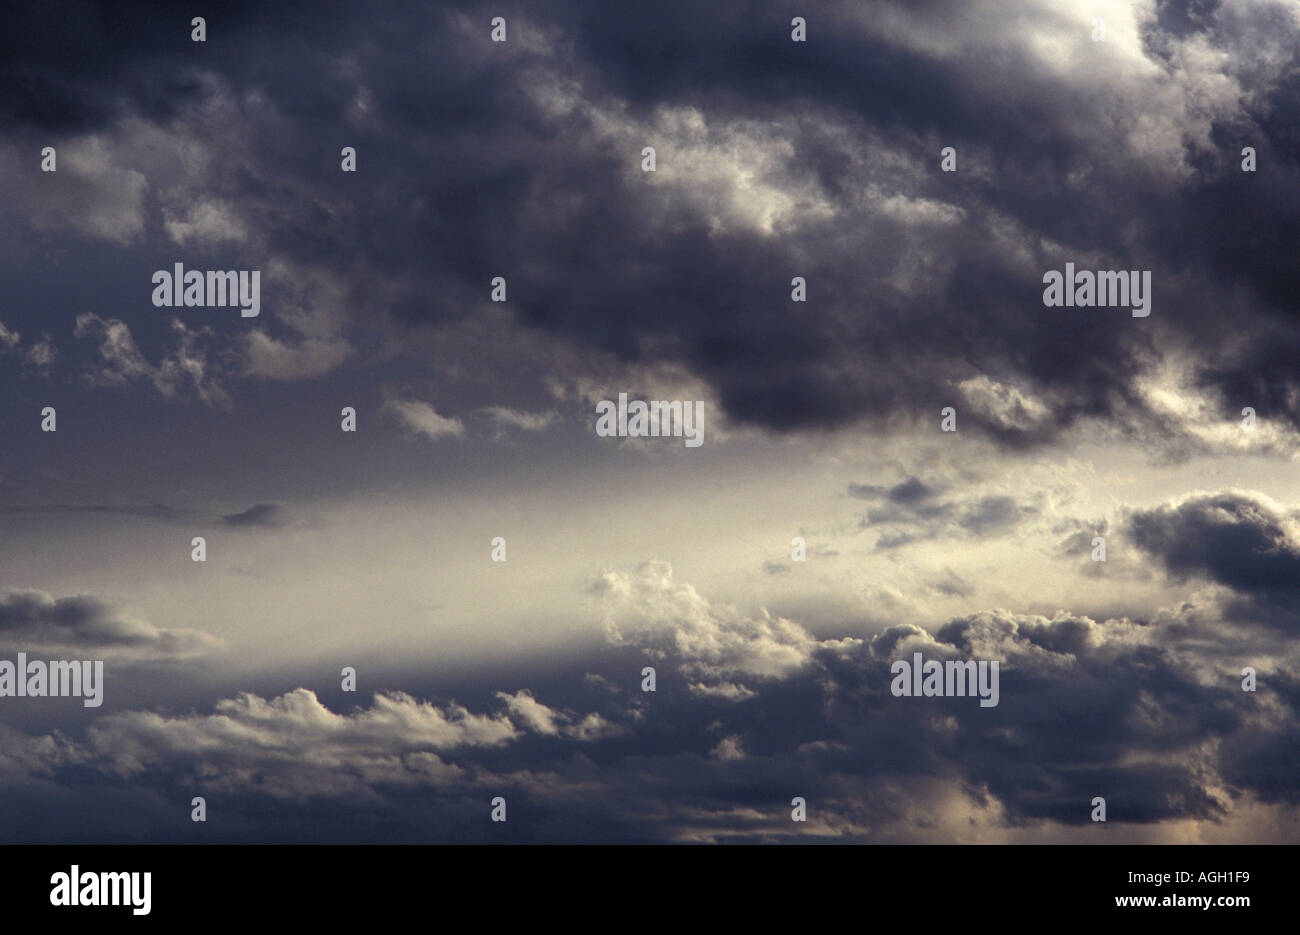 Spectacular cloud formations from the Bolivian altiplano and the Salar de Uyuni Bolivia South America - Stock Image